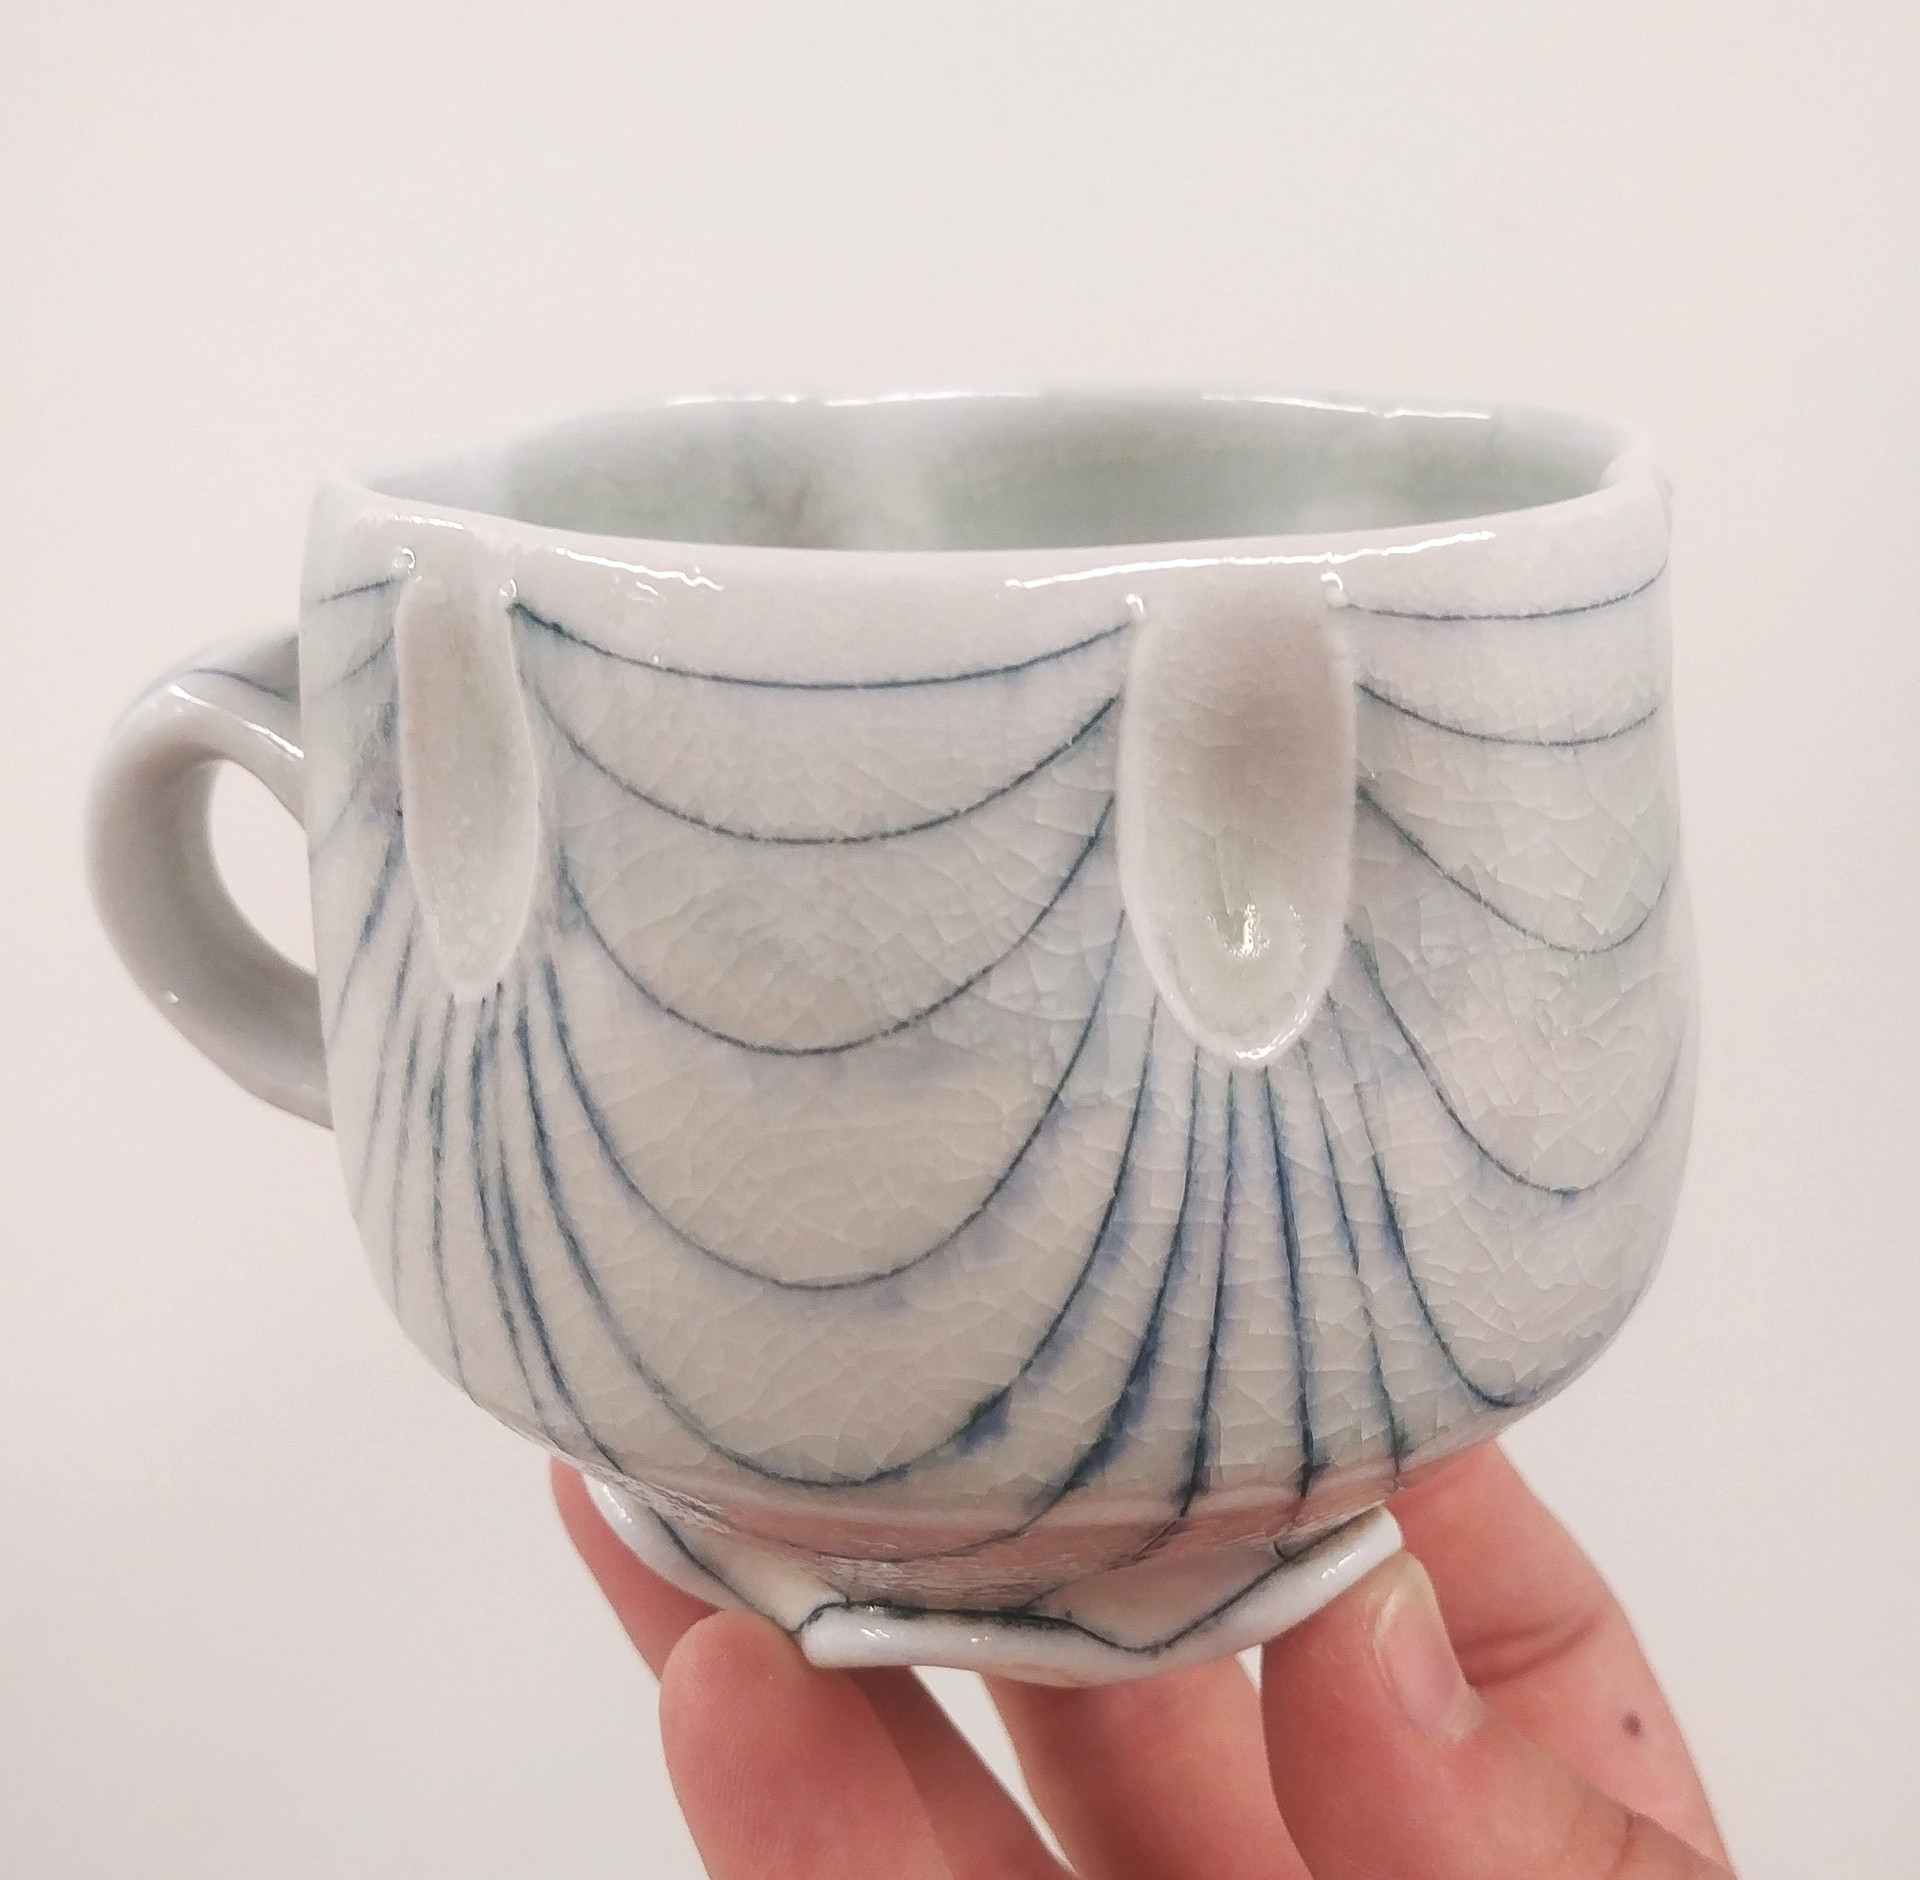 thrown, altered, and incised porcelain mug